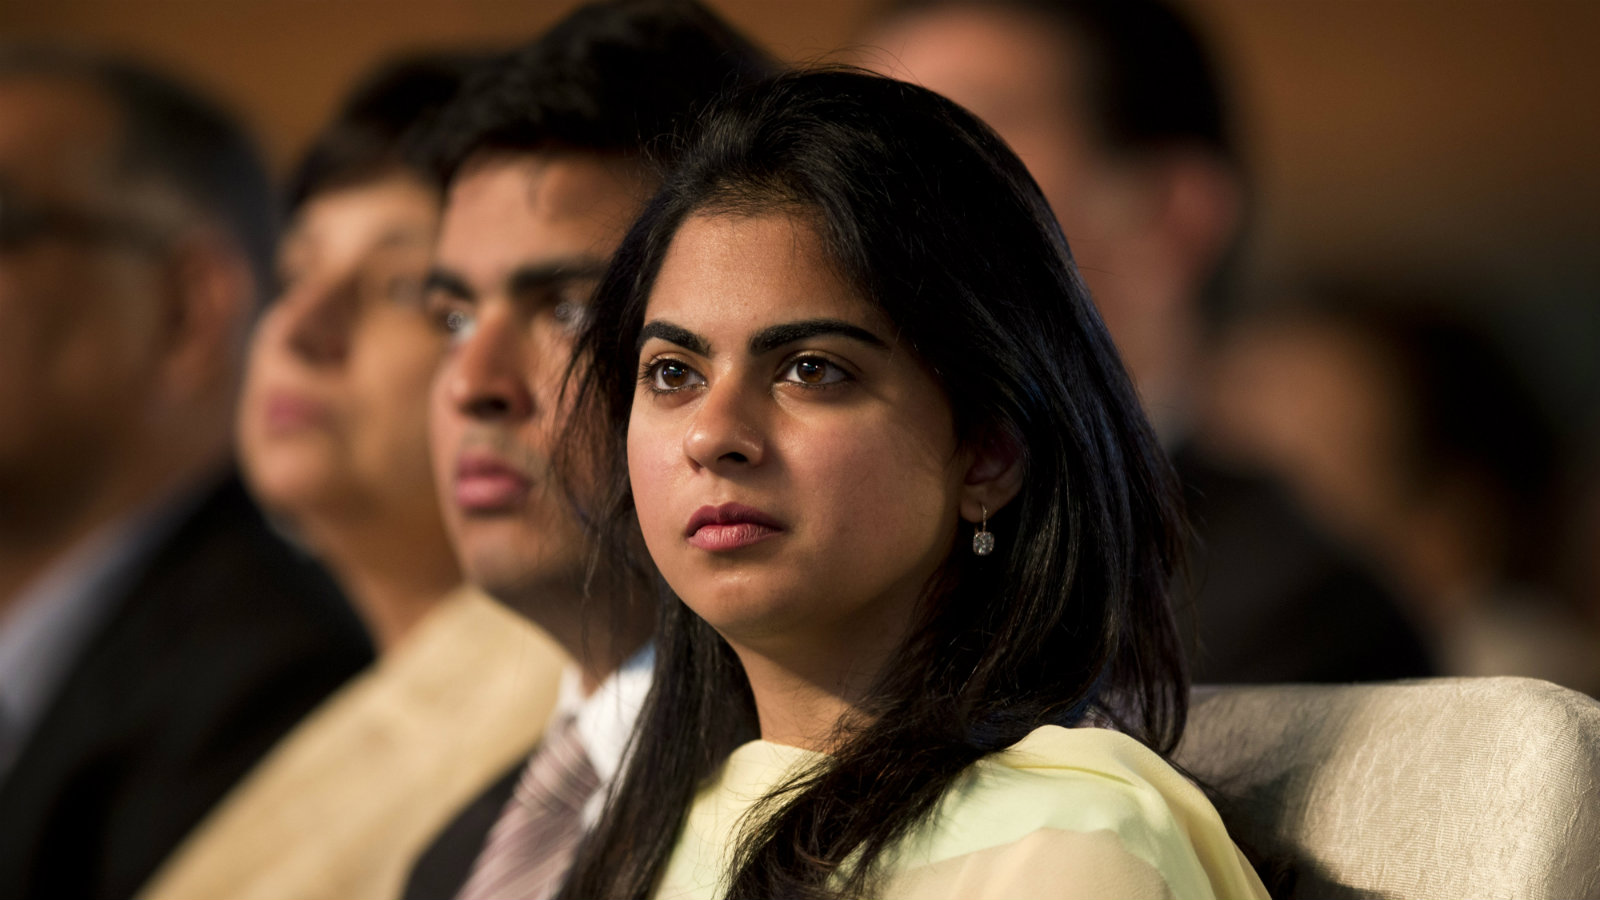 Isha Ambani, daughter of Indian Industrialist Mukesh Ambani, watches proceedings during the launch of digital India project in New Delhi, India, Wednesday, July 1, 2015. The initiative involves creating opportunities for all Indian citizens by harnessing digital technologies, to empower every citizen with access to digital services, knowledge and information.